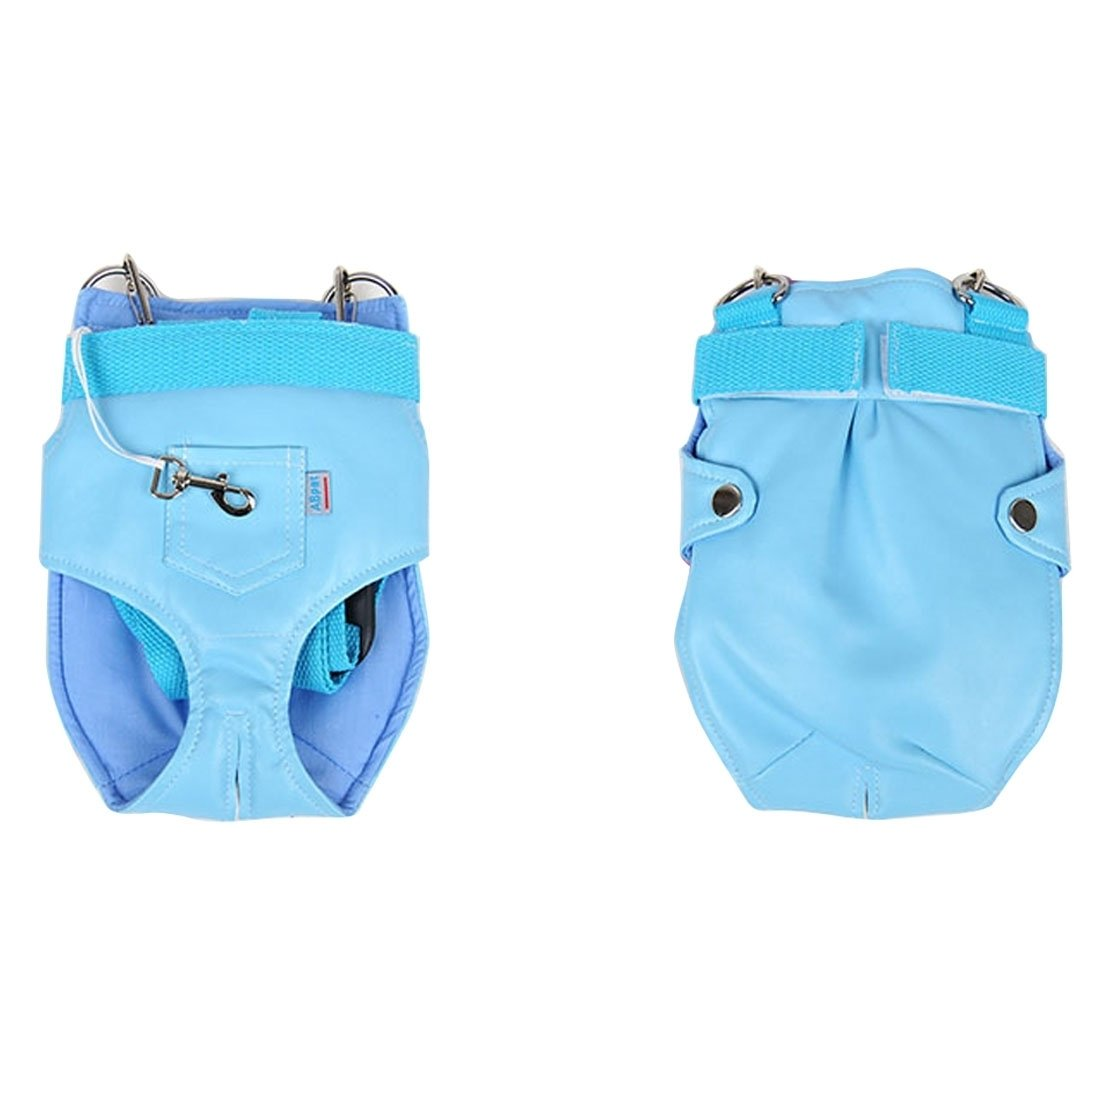 bluee XUJW-pet store, Pet Chest Backpack   Soft Leather Trouser Style Bag   Portable Pet Backpack for Dog and oher Pets Small , Size 2417cm ( color   bluee )